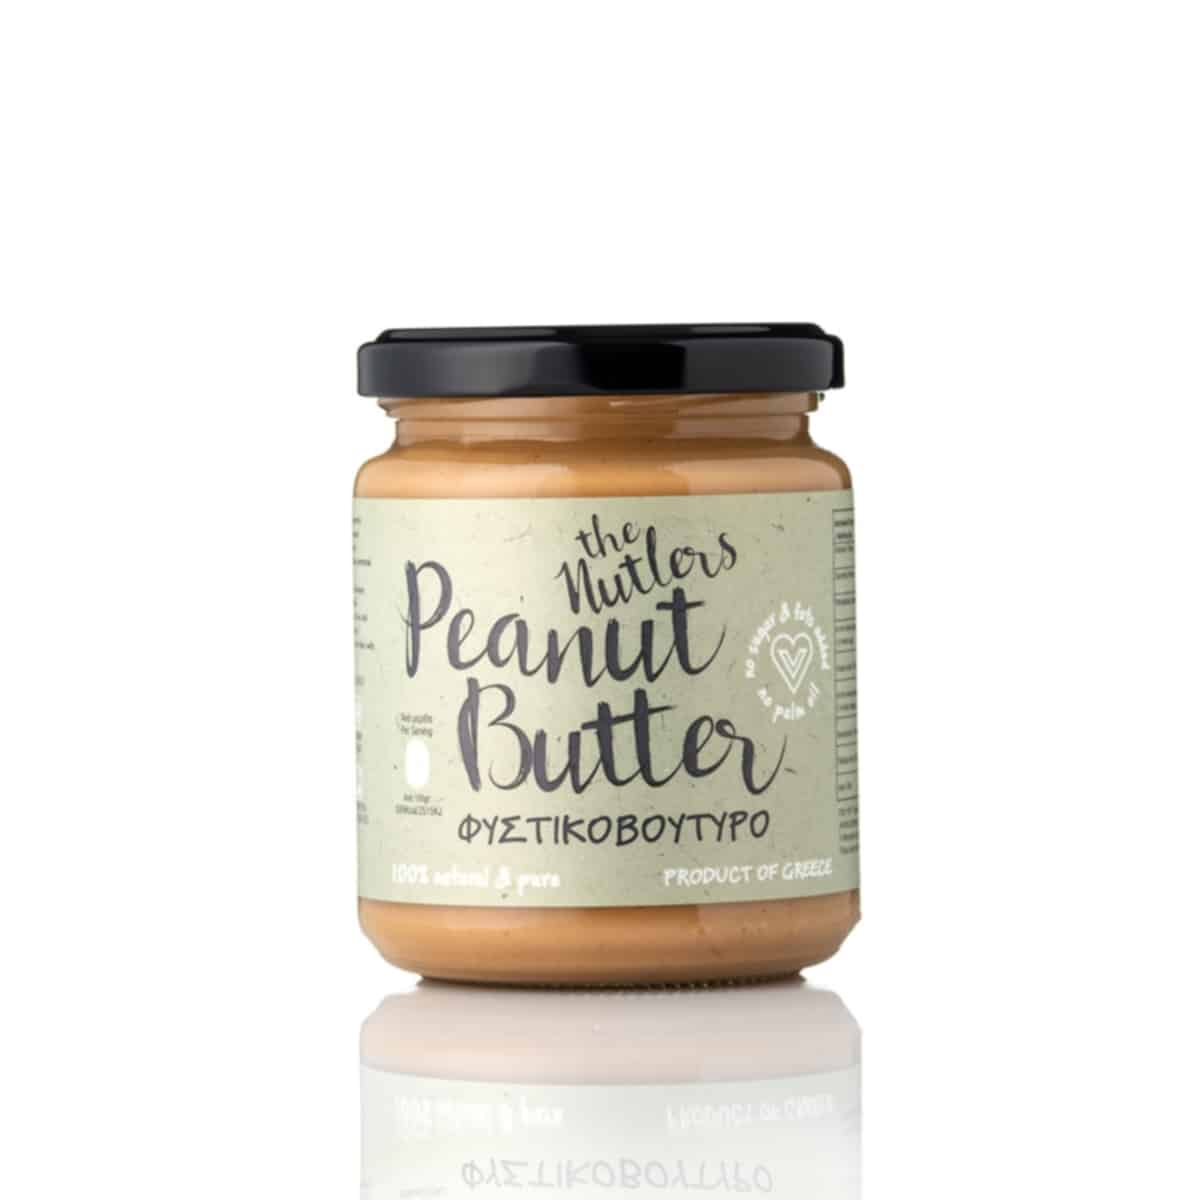 The Nutlers Peanut Butter